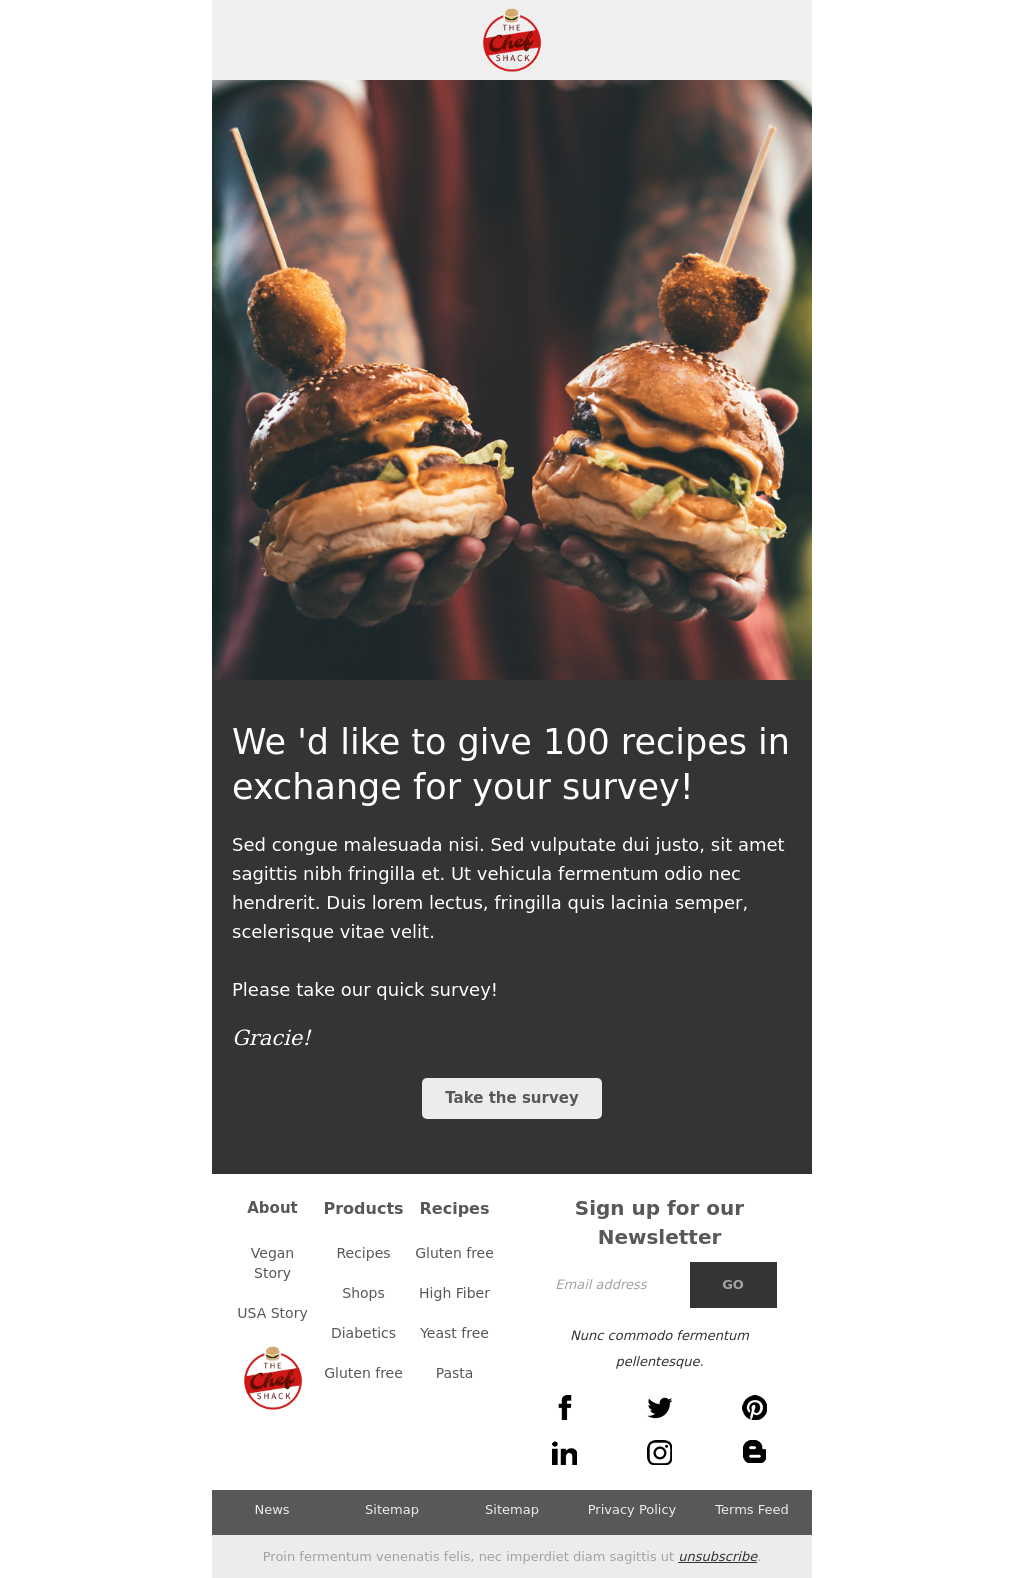 Clean Looking Street Food Themed Survey Invitation Email Template